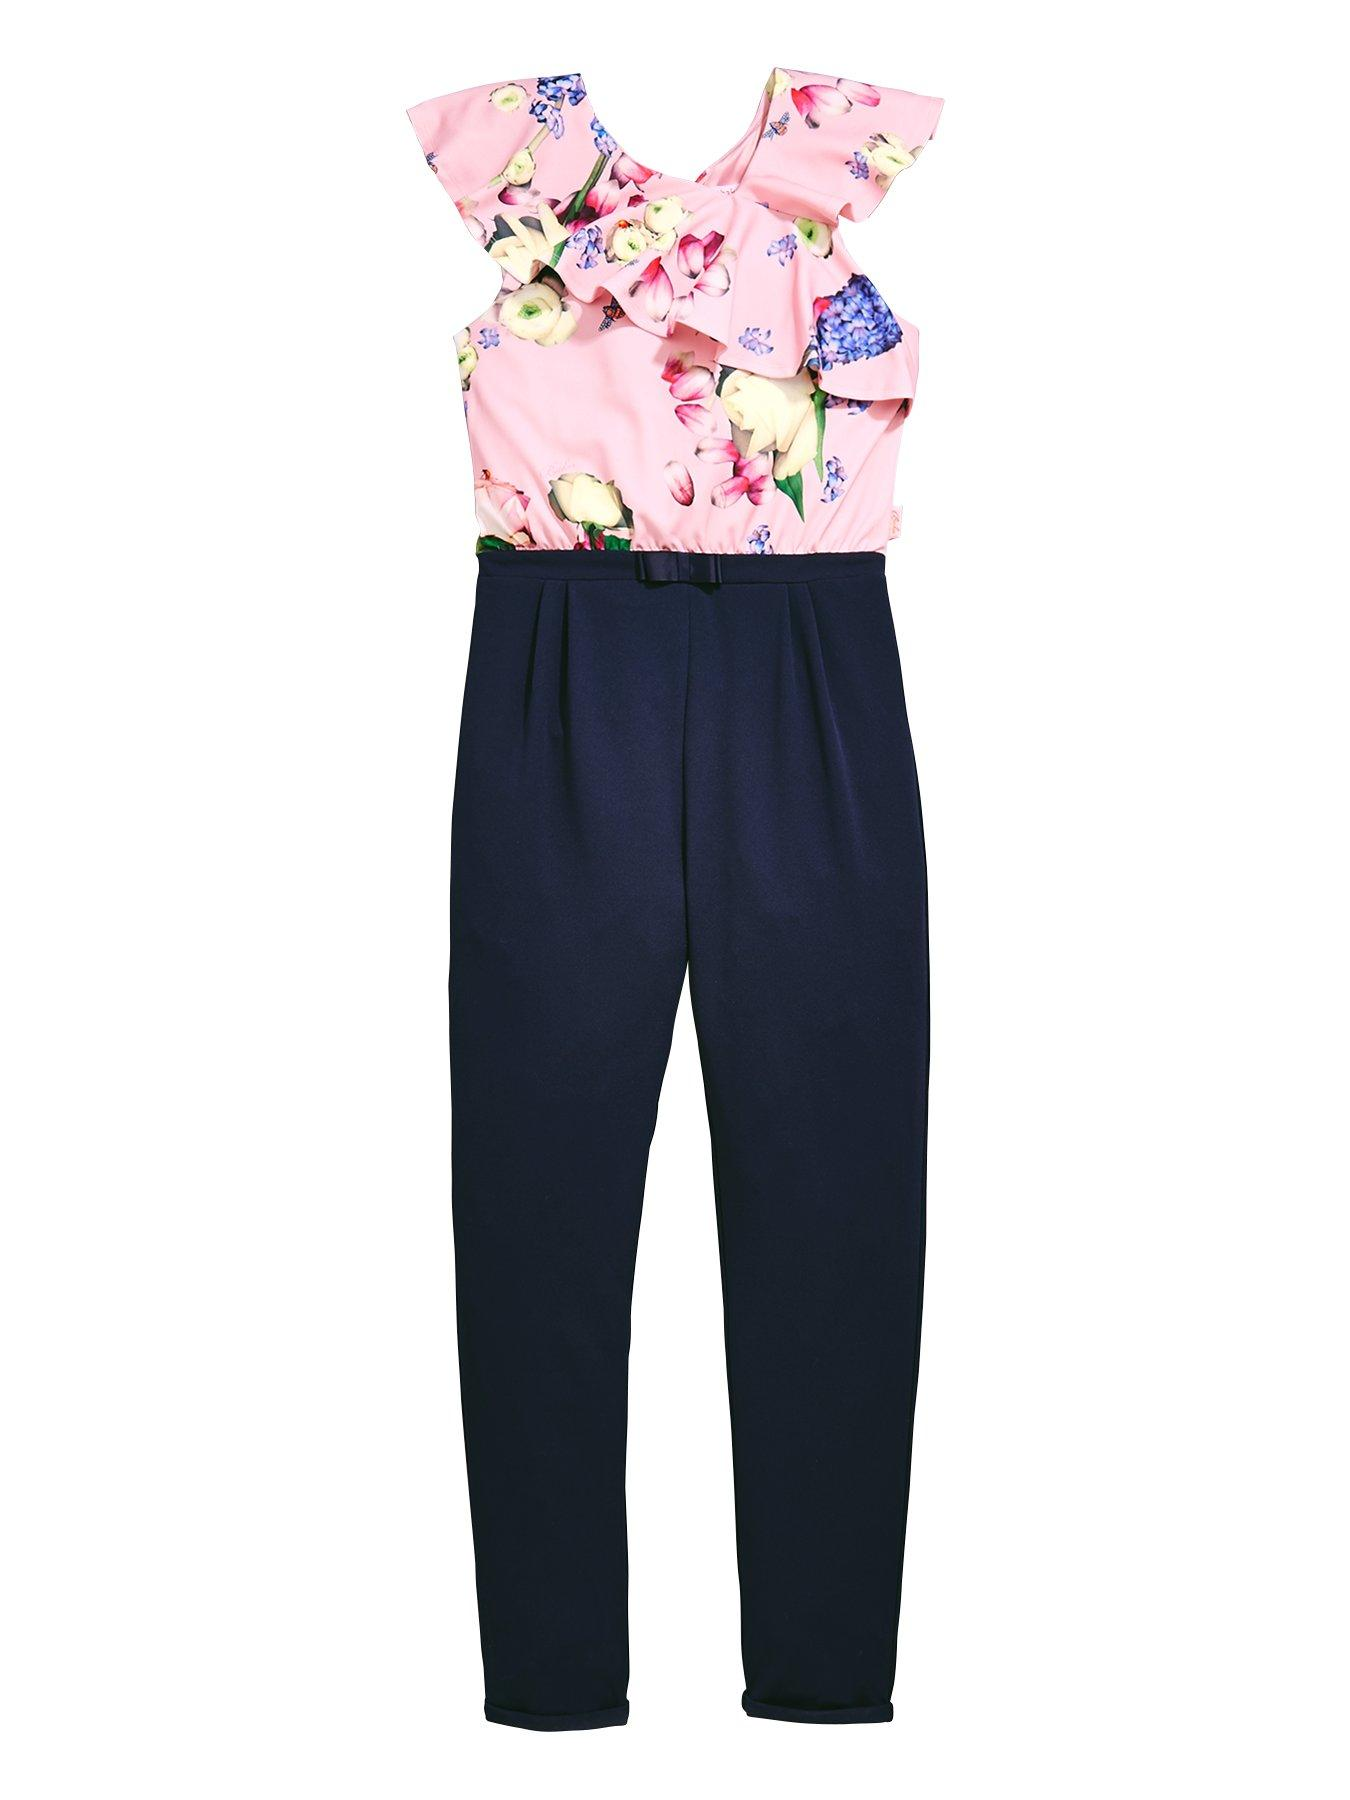 Girls' Clothing (newborn-5t) One-pieces Baby Ted Baker Romper Bringing More Convenience To The People In Their Daily Life